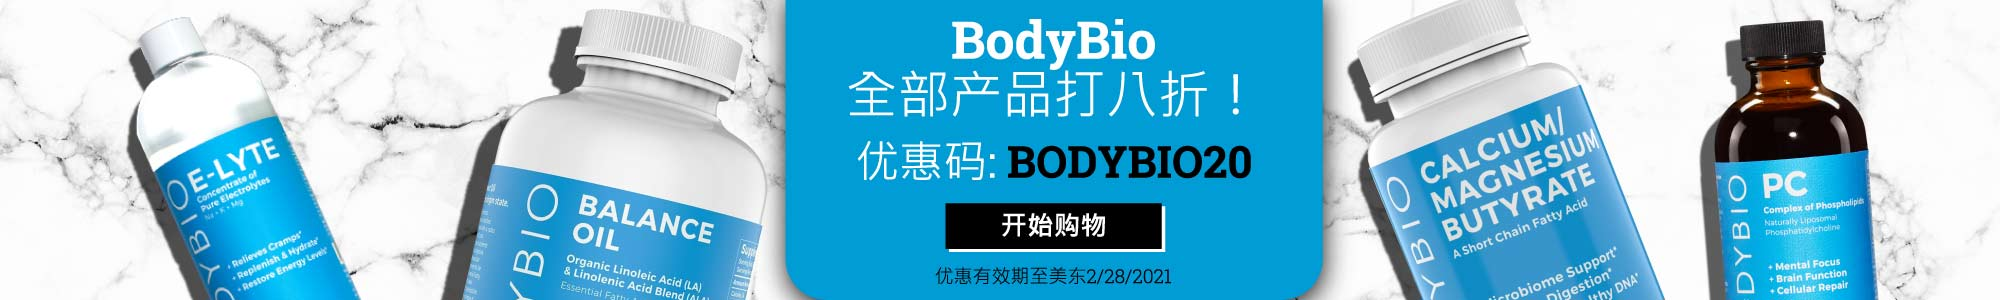 20% off entire BodyBio line. Use Coupon code: bodybio20 Shop now. Valid until 02/28/2021.